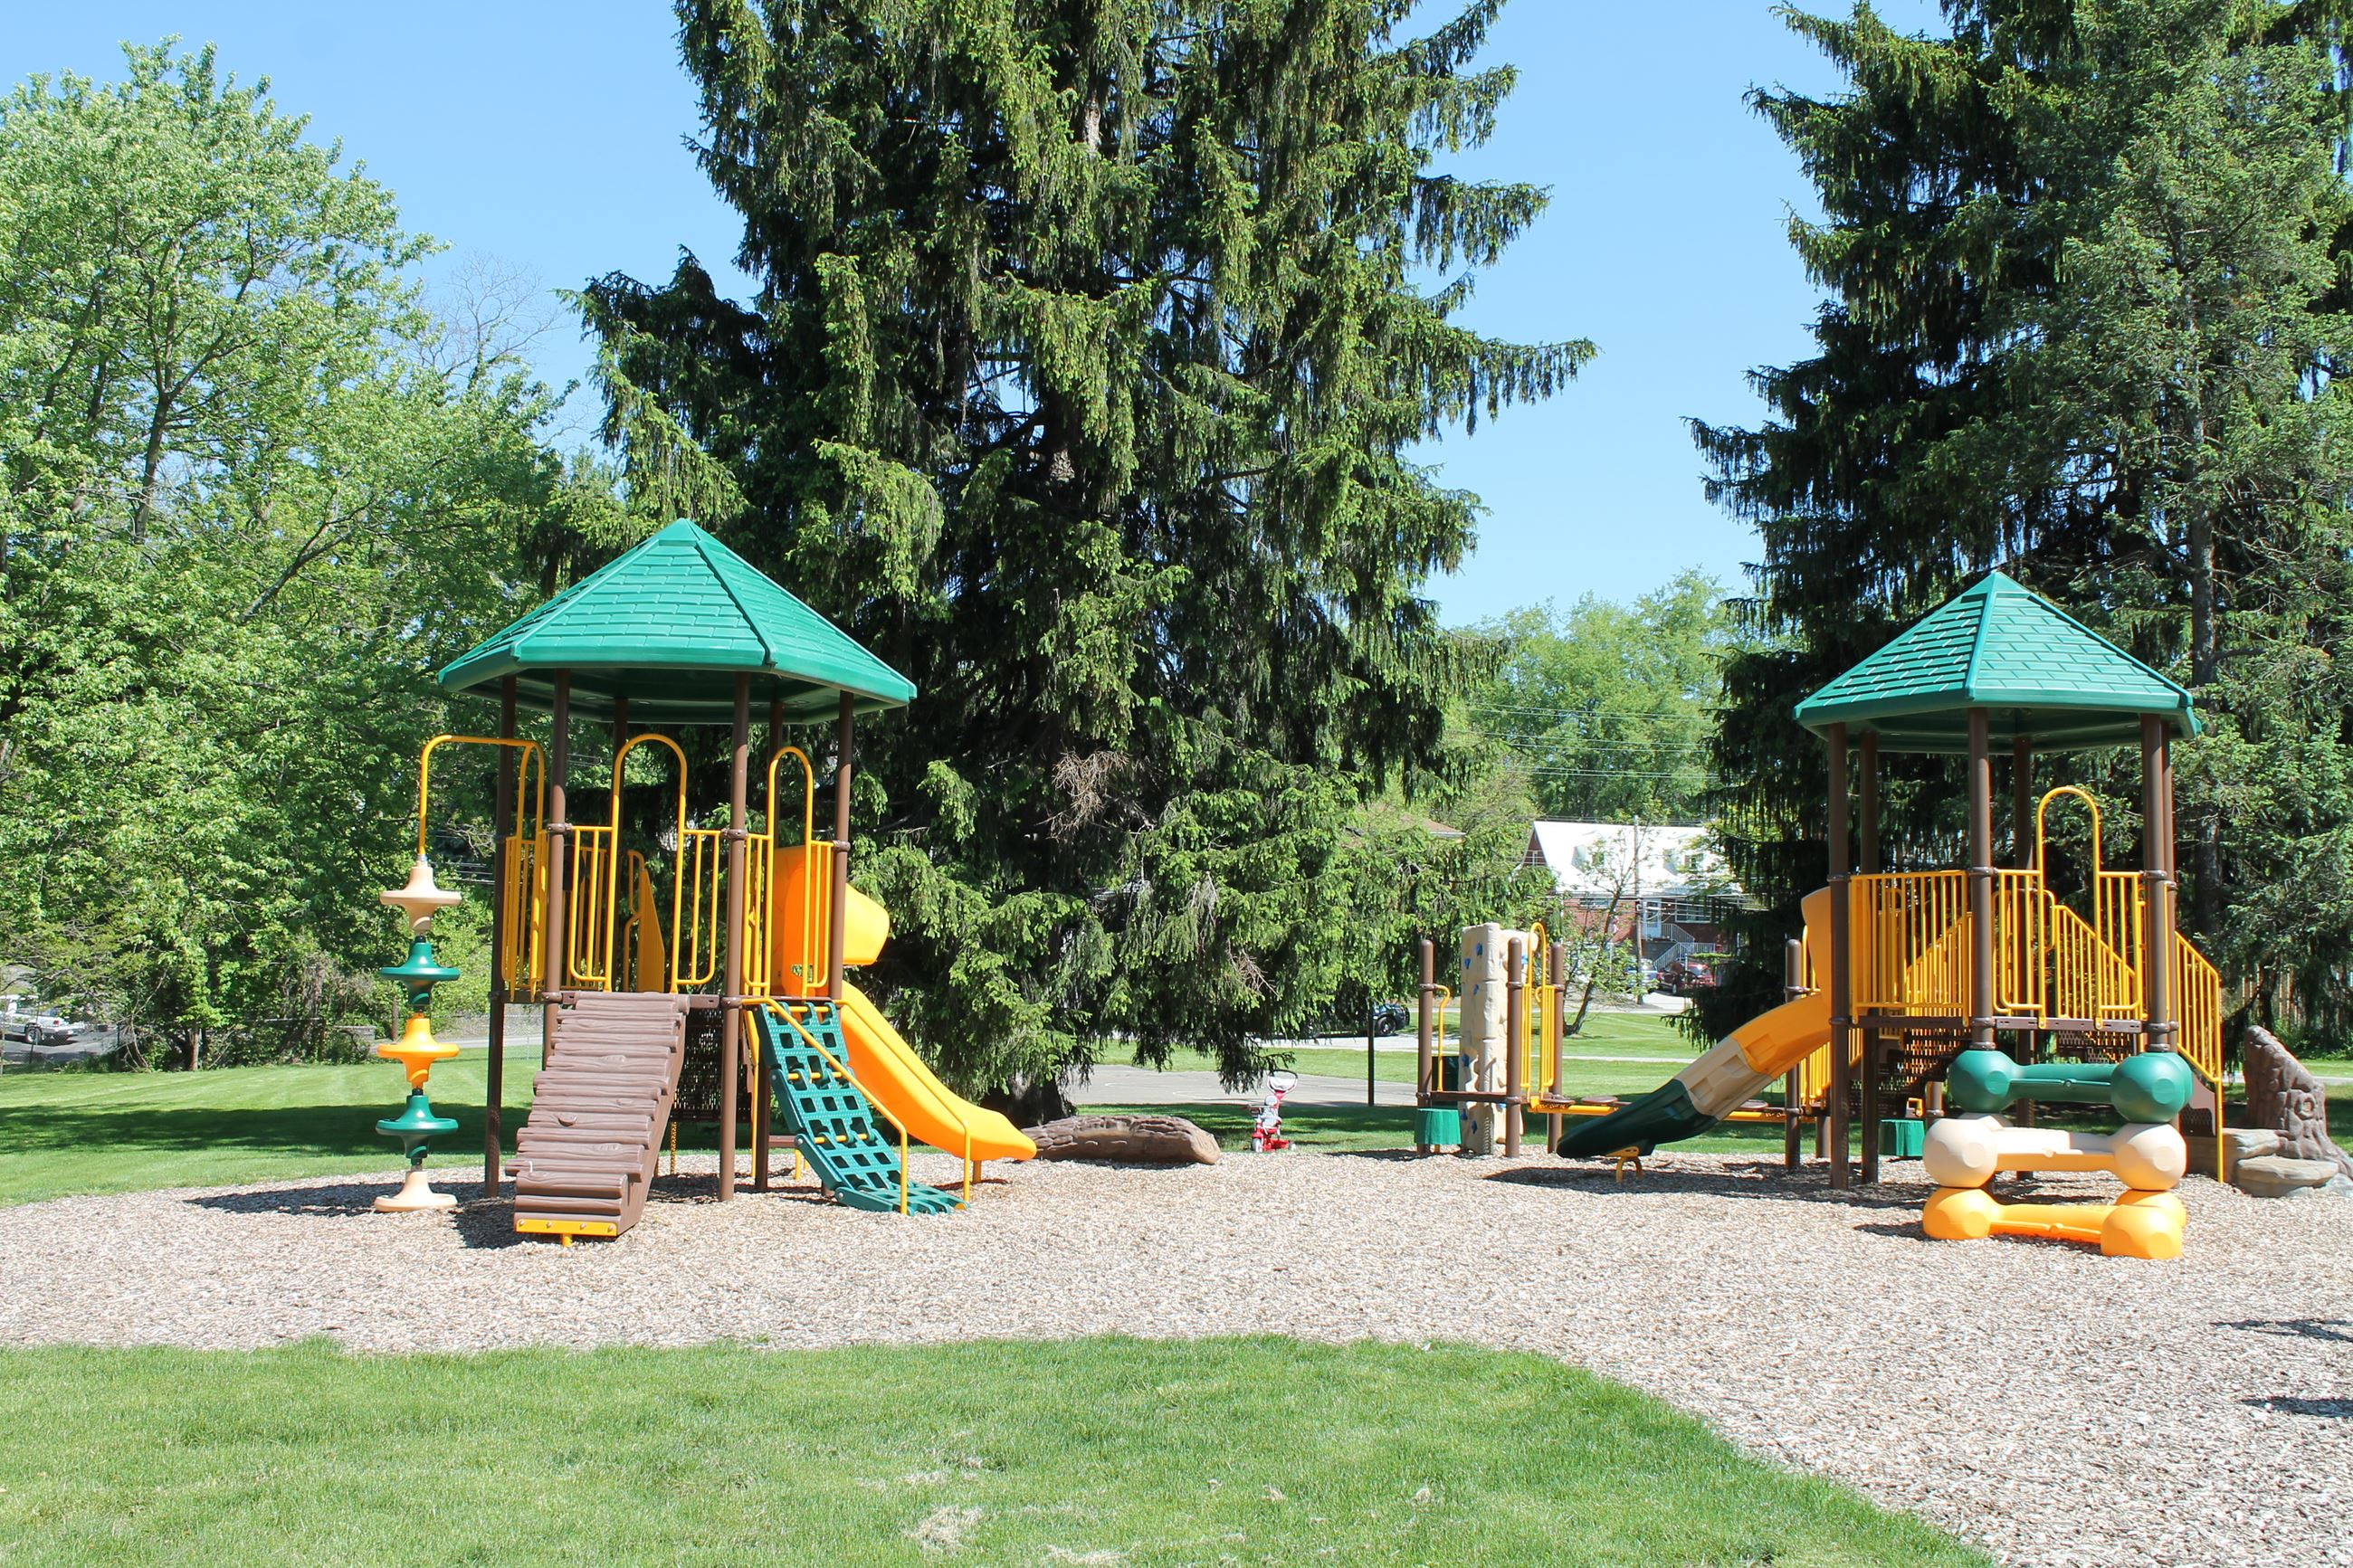 Duss Park full playground